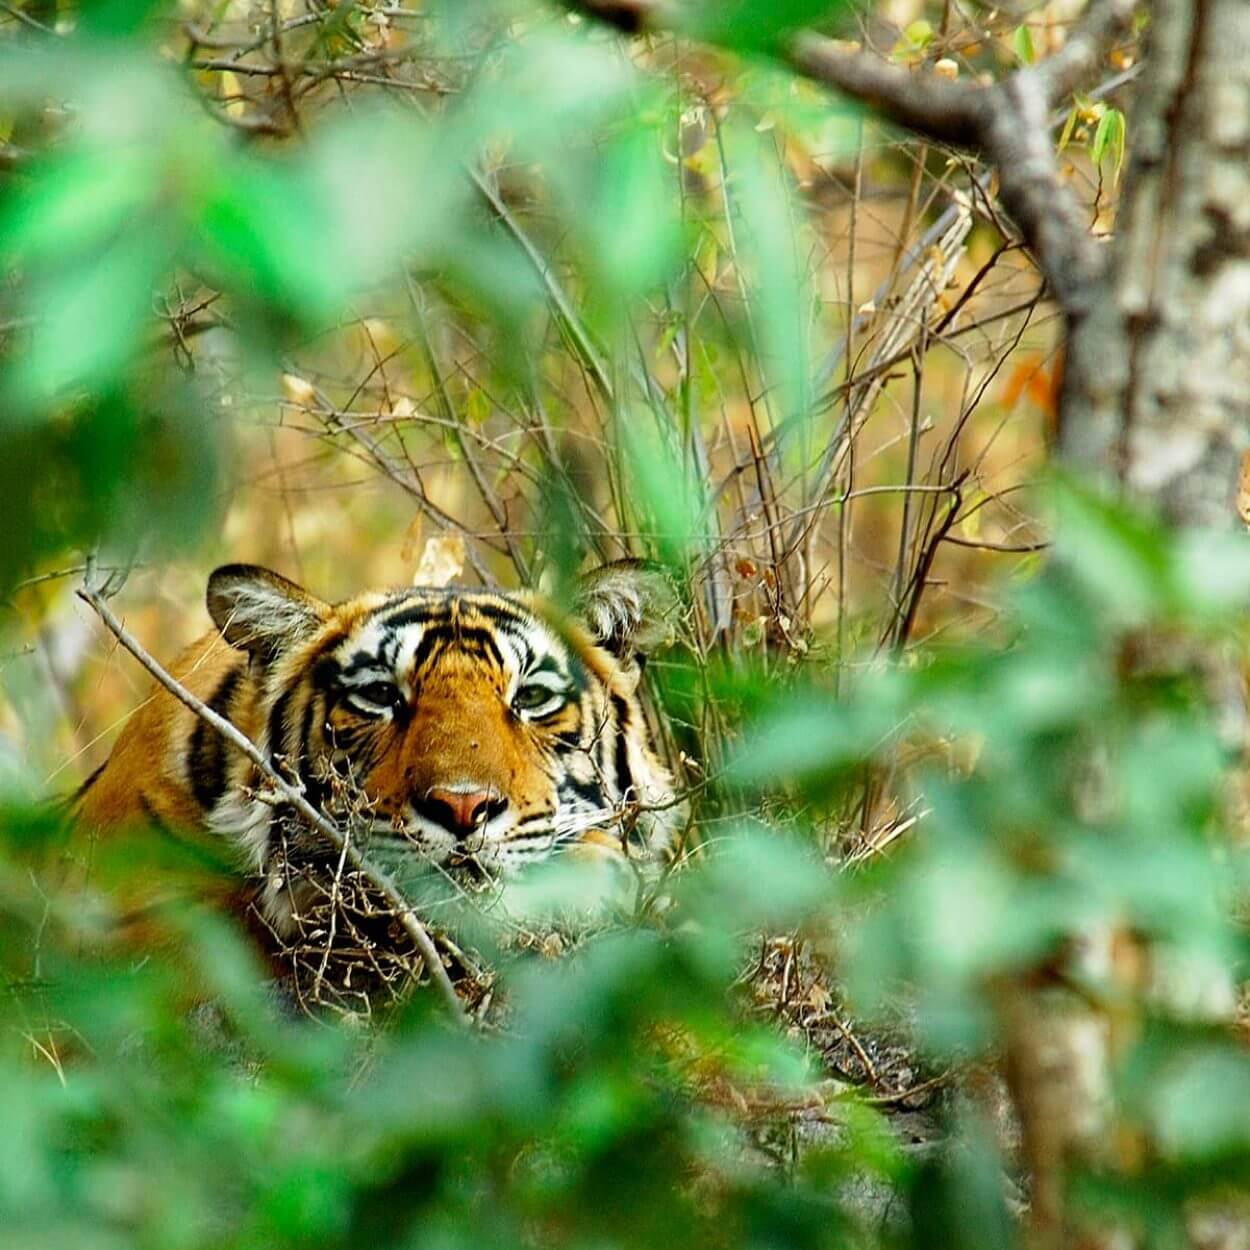 Tiger behind greenery